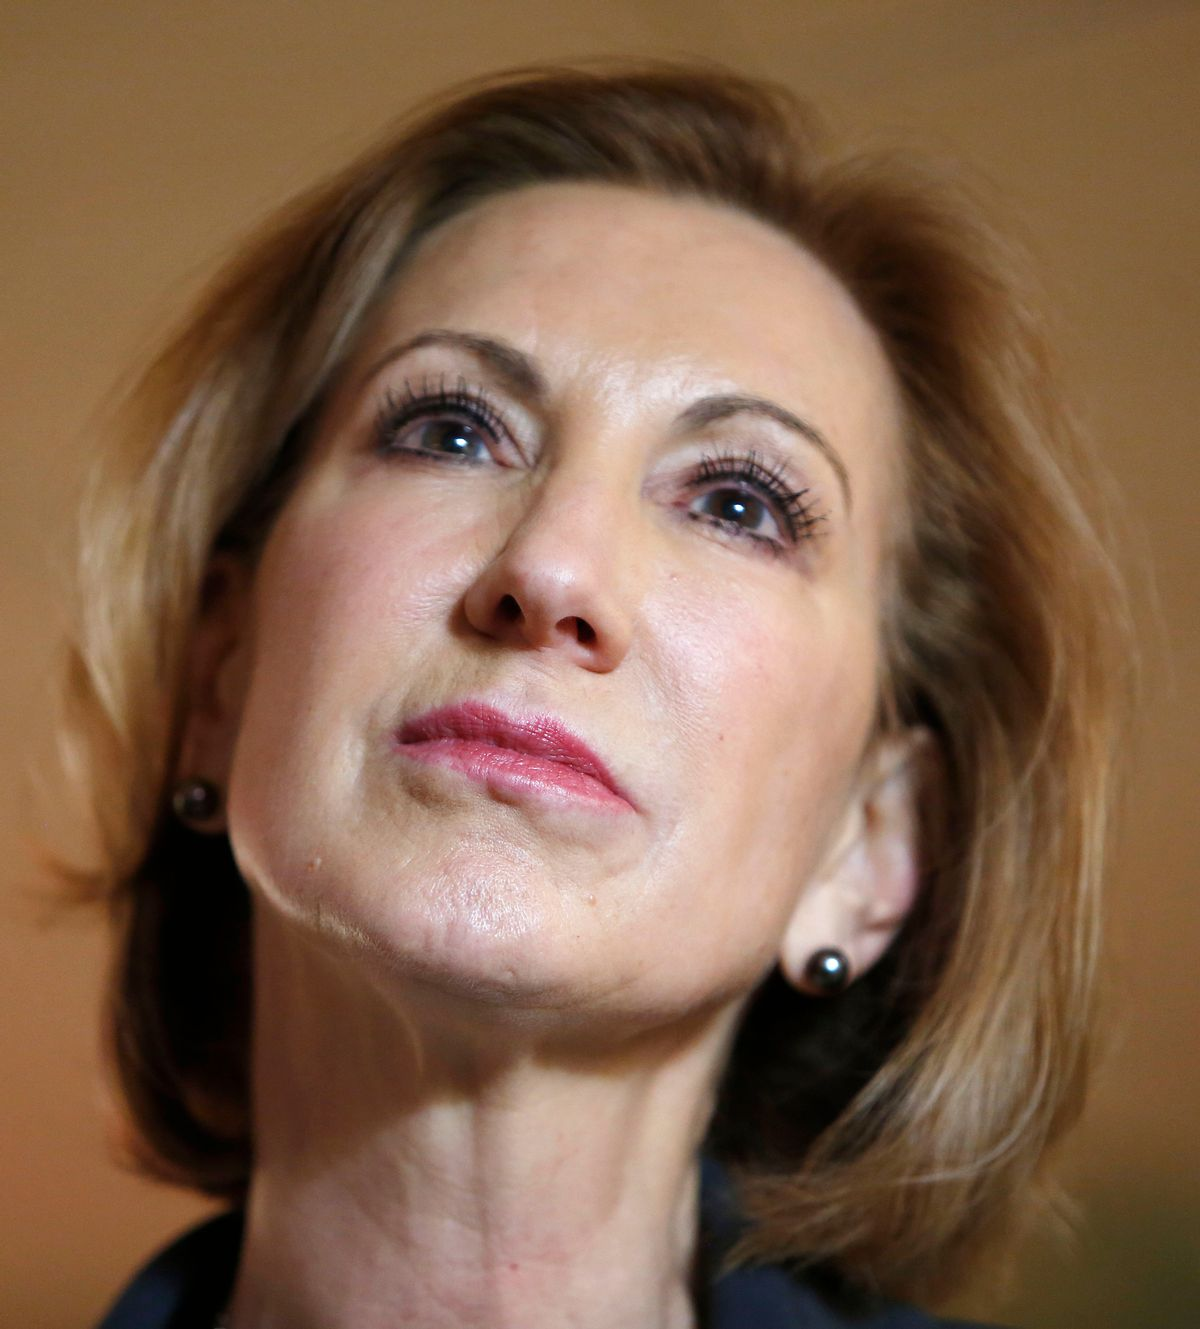 Former Hewlett-Packard CEO Carly Fiorina listens to questions during a business luncheon with New Hampshire Republican lawmakers, Tuesday, April 28, 2015, in Concord, N.H. (AP Photo/Jim Cole)  (AP)